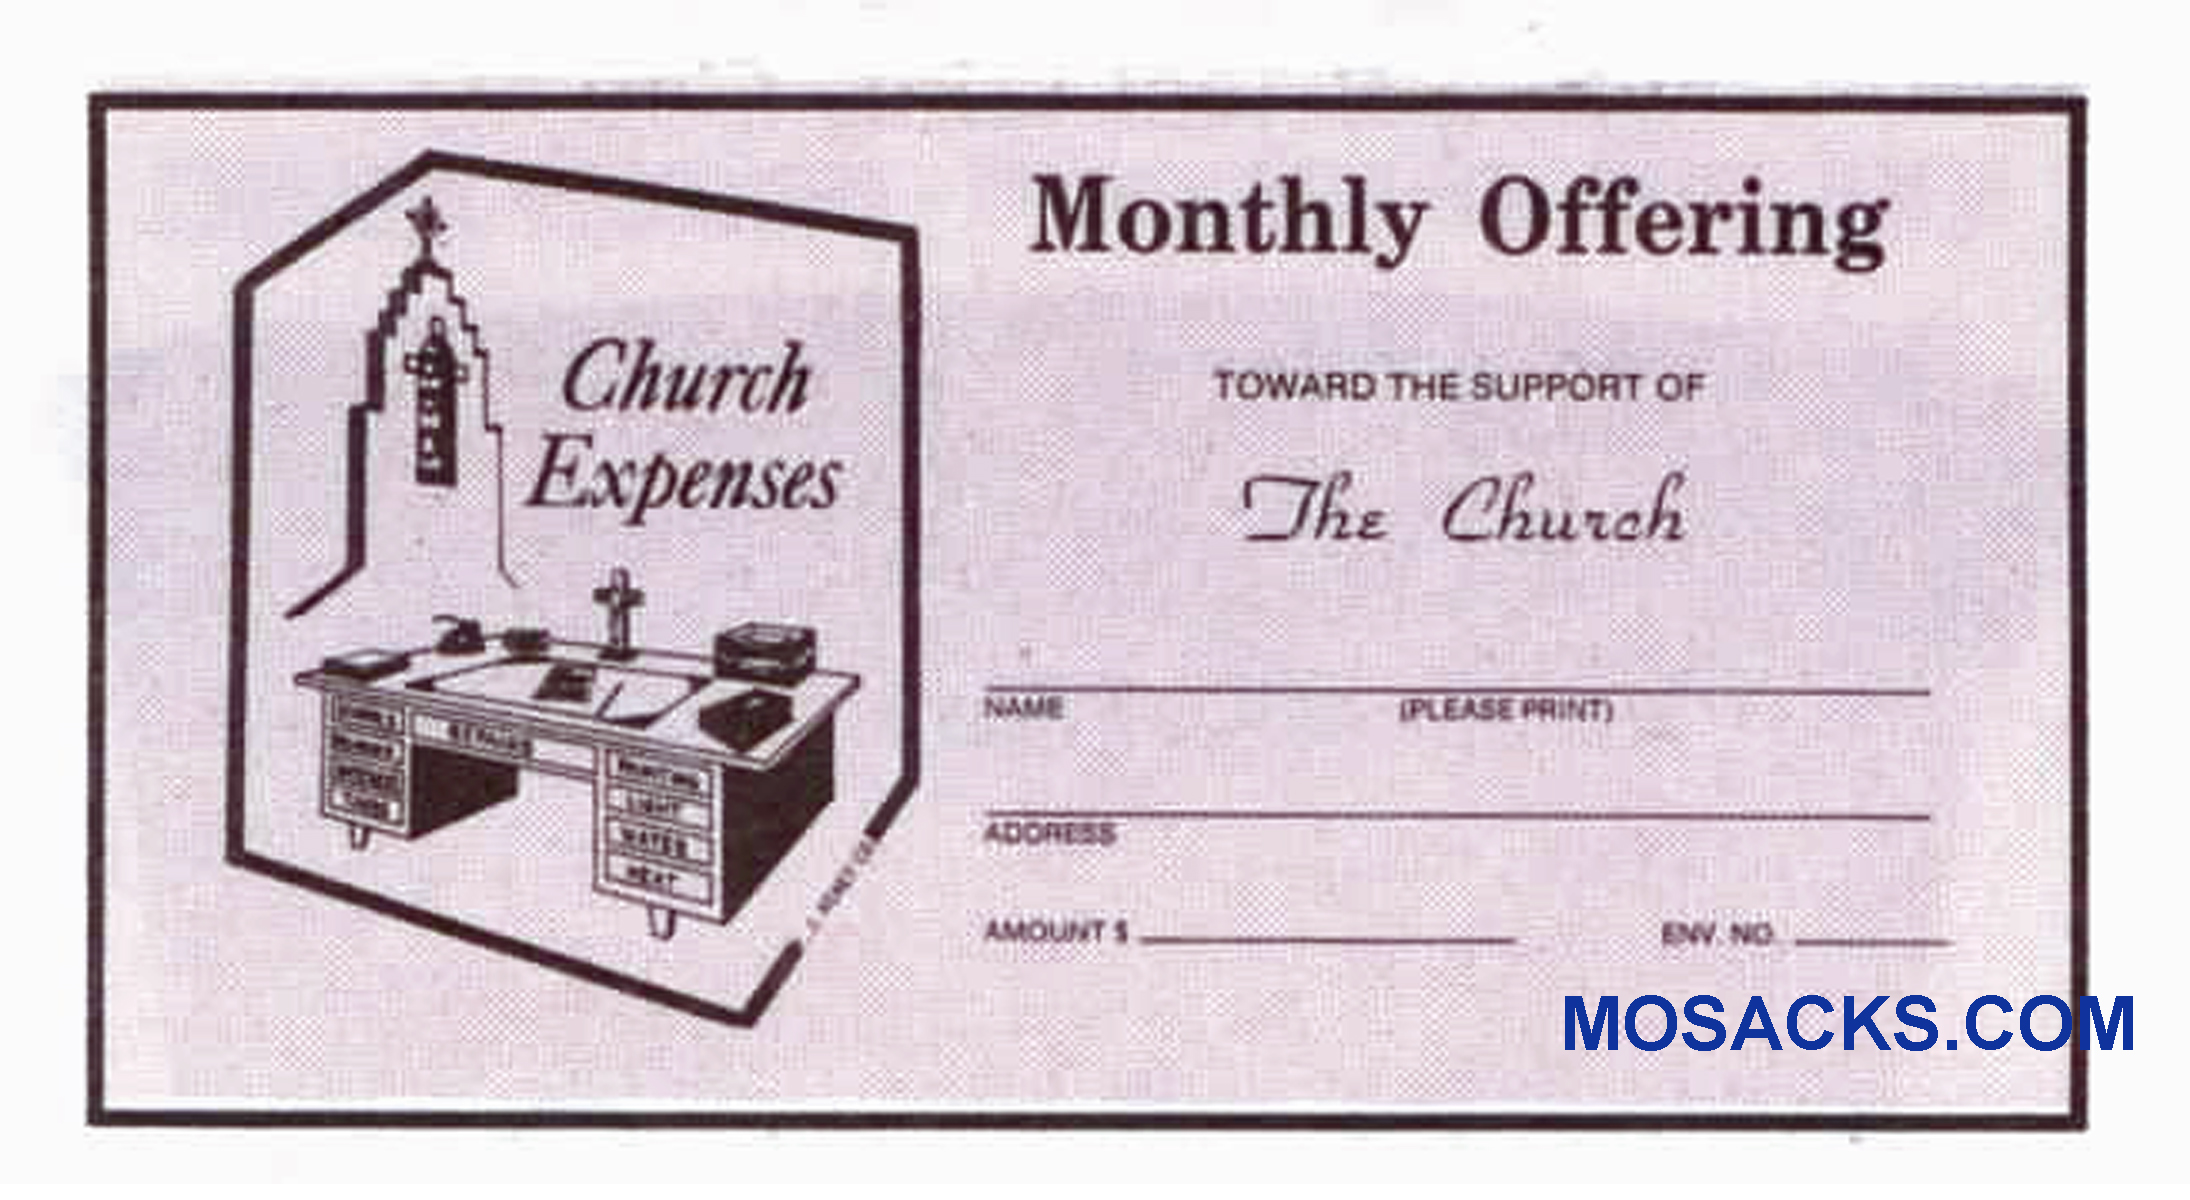 Monthly Church Offering Envelope 6-1/4 x 3-1/8 #304-367